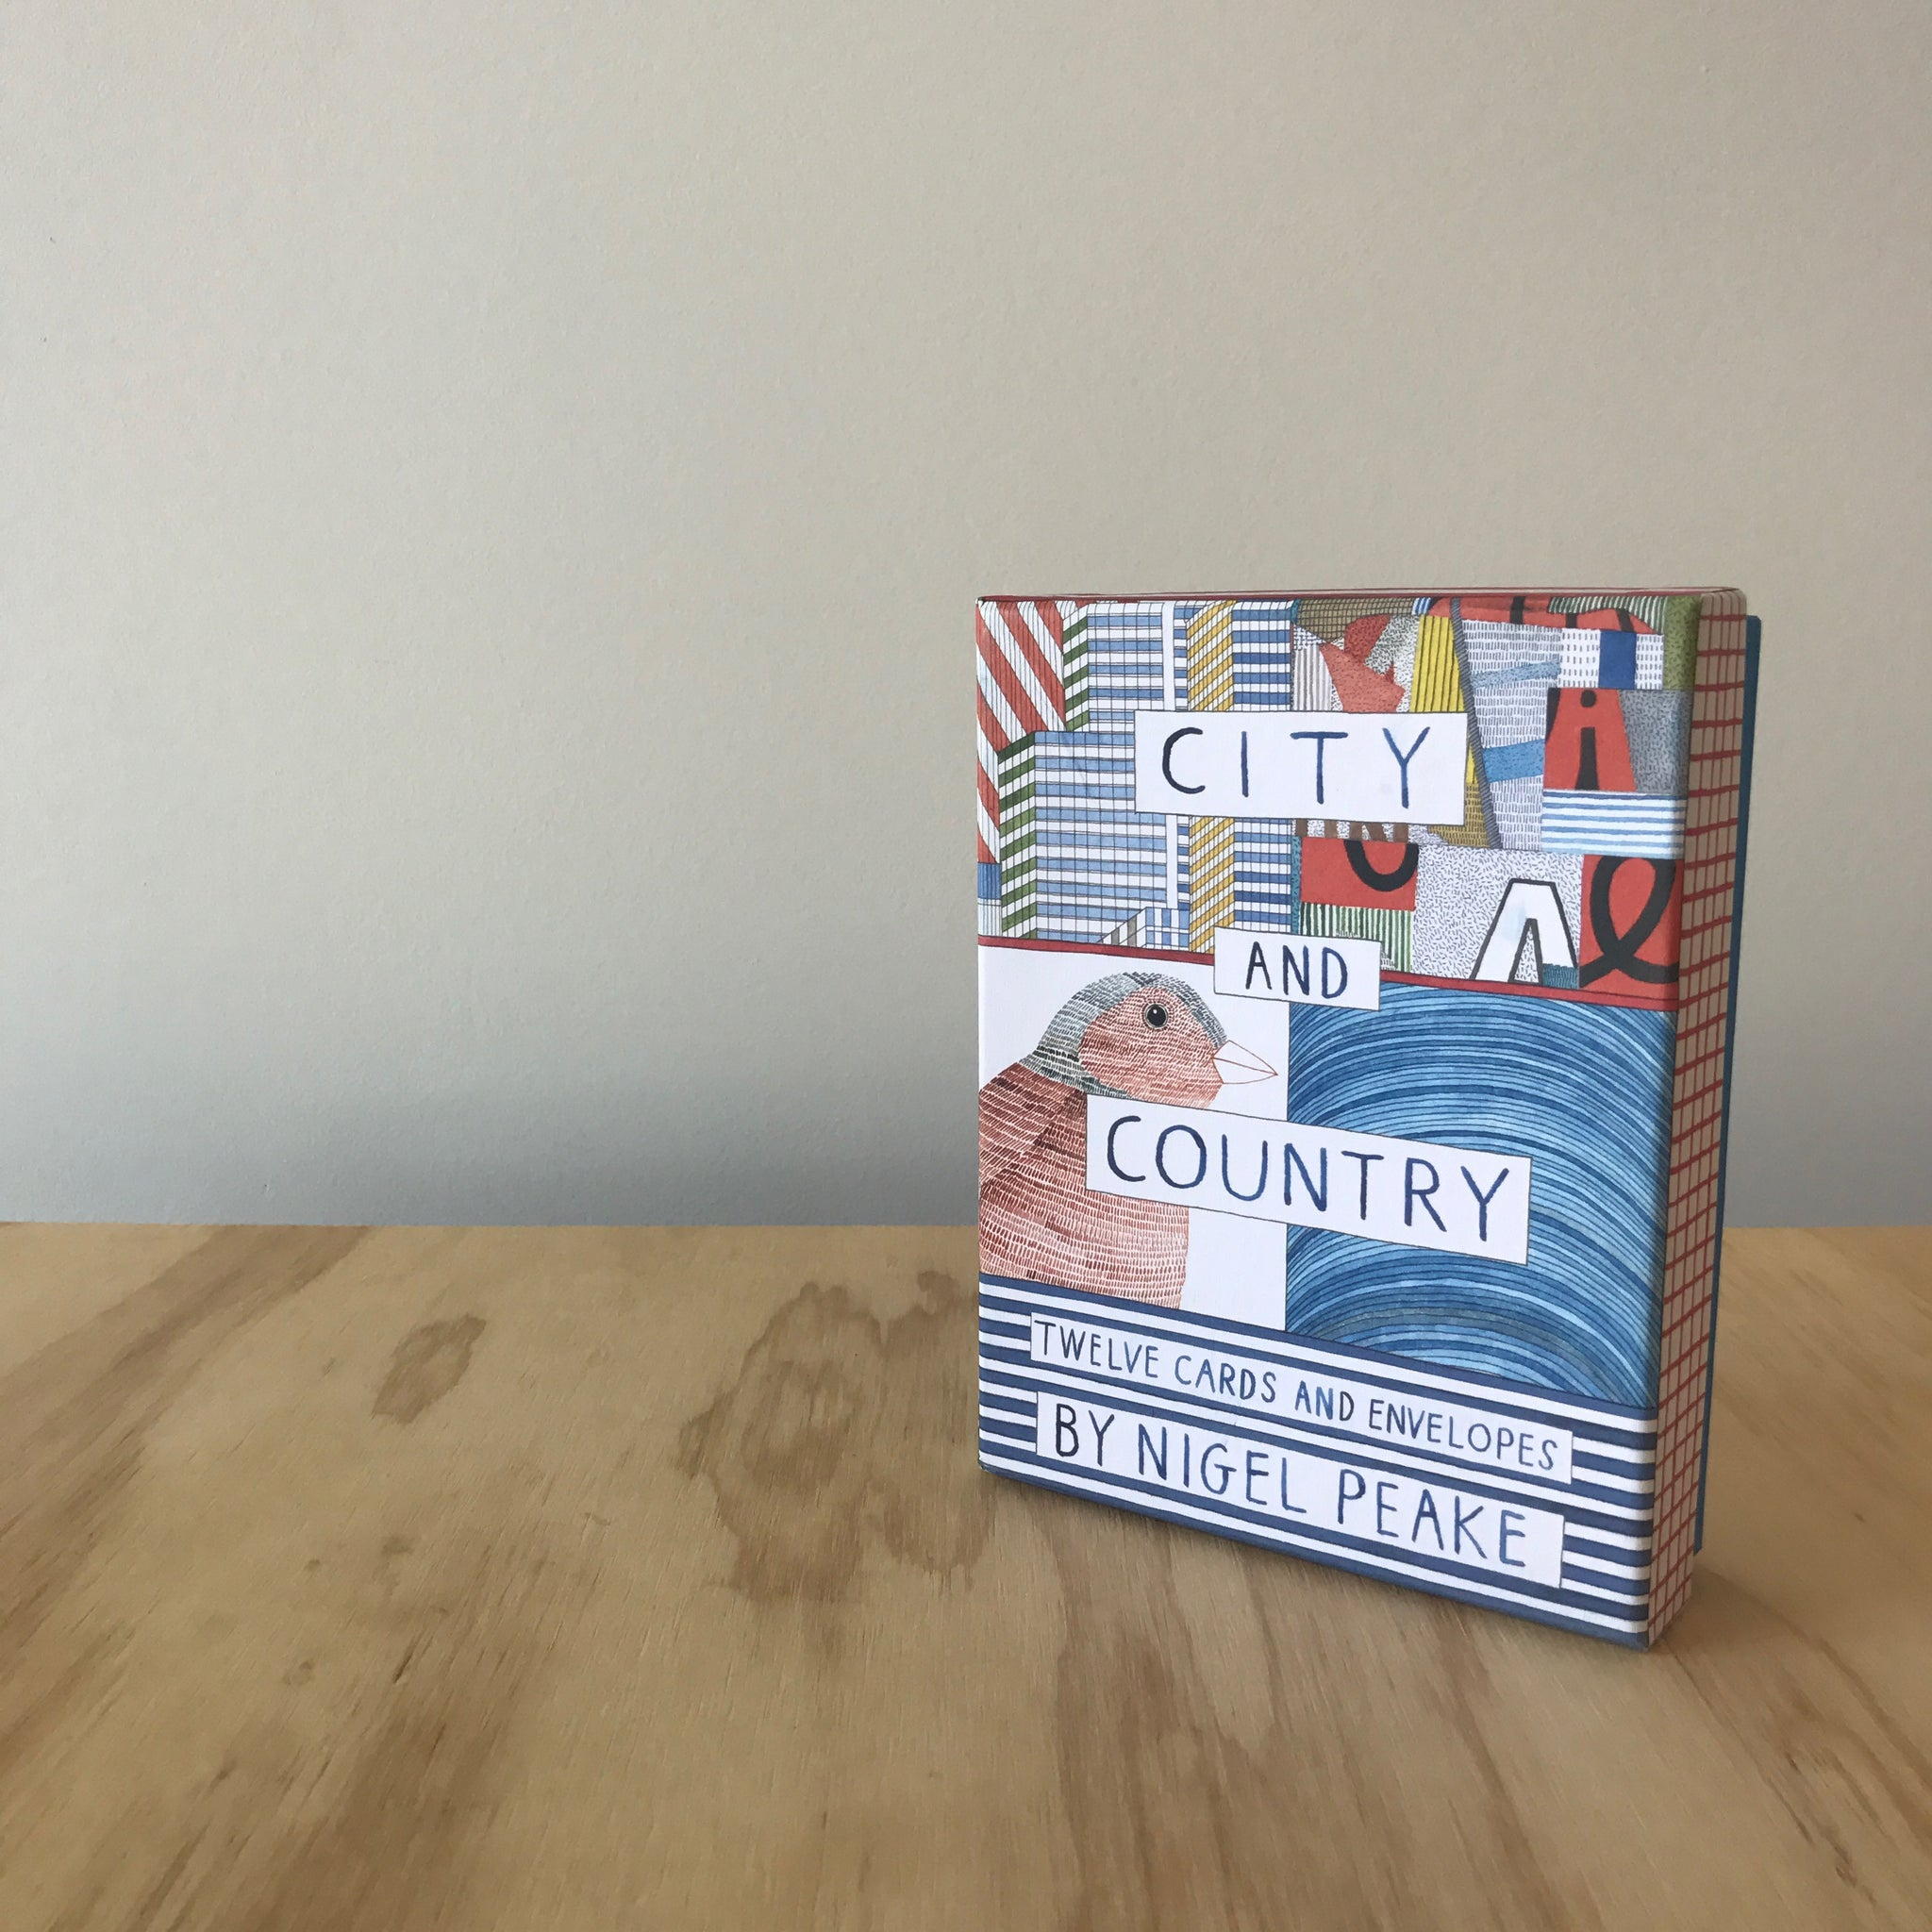 City and Country Notecards by Nigel Peake